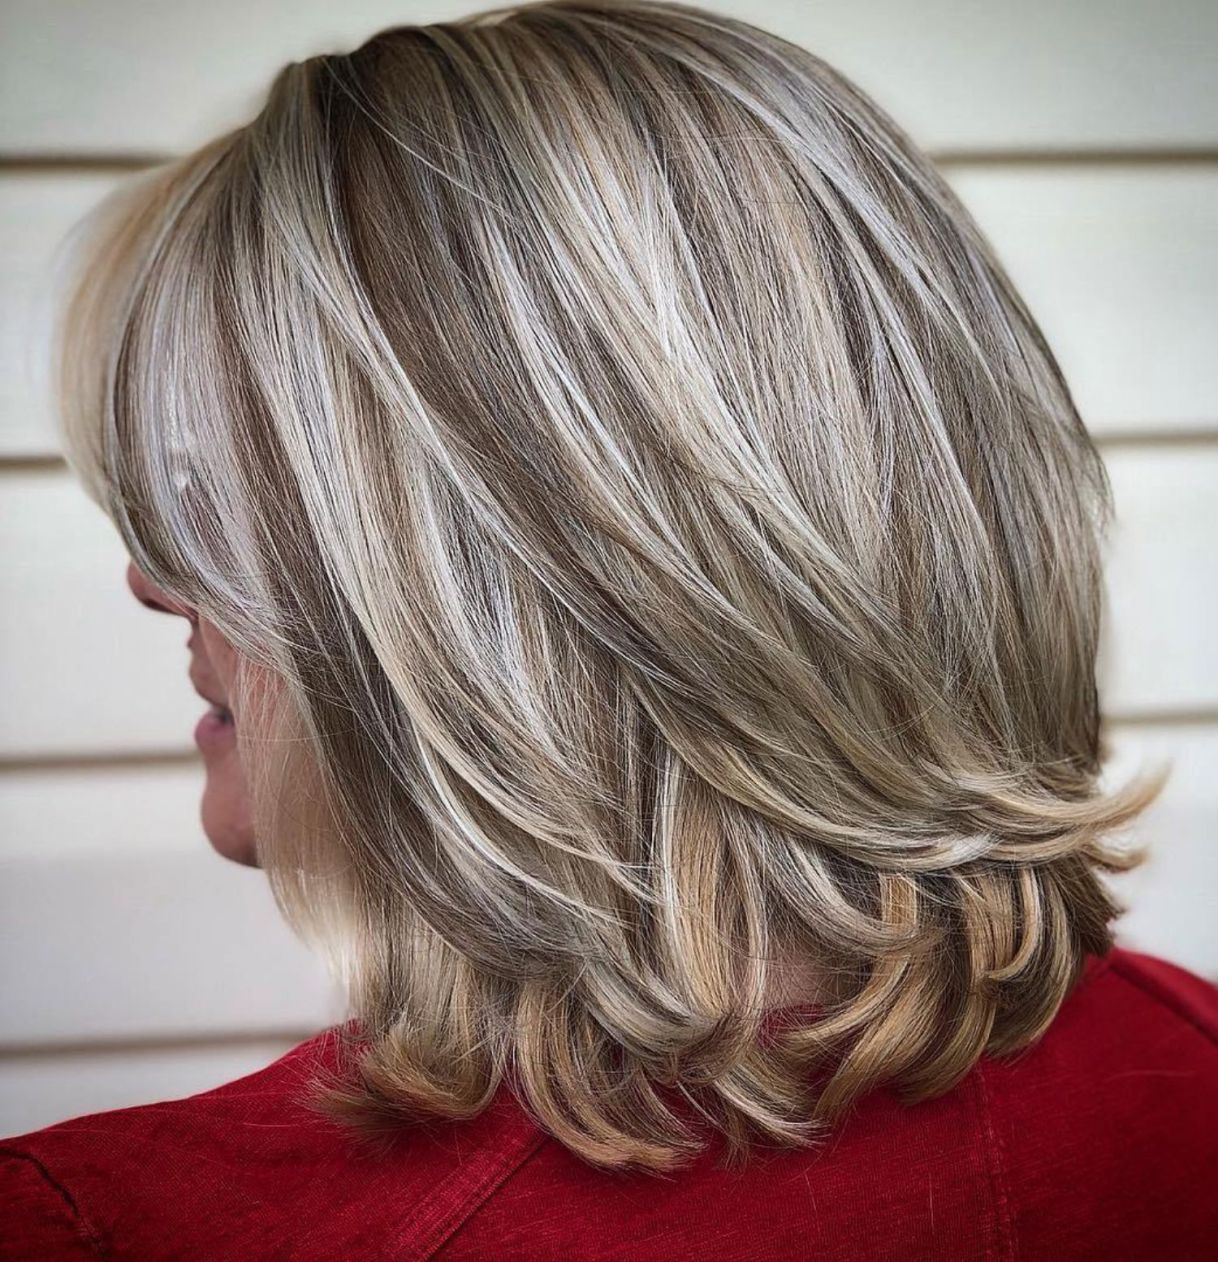 40+ Medium length layered hairstyles for gray hair inspirations